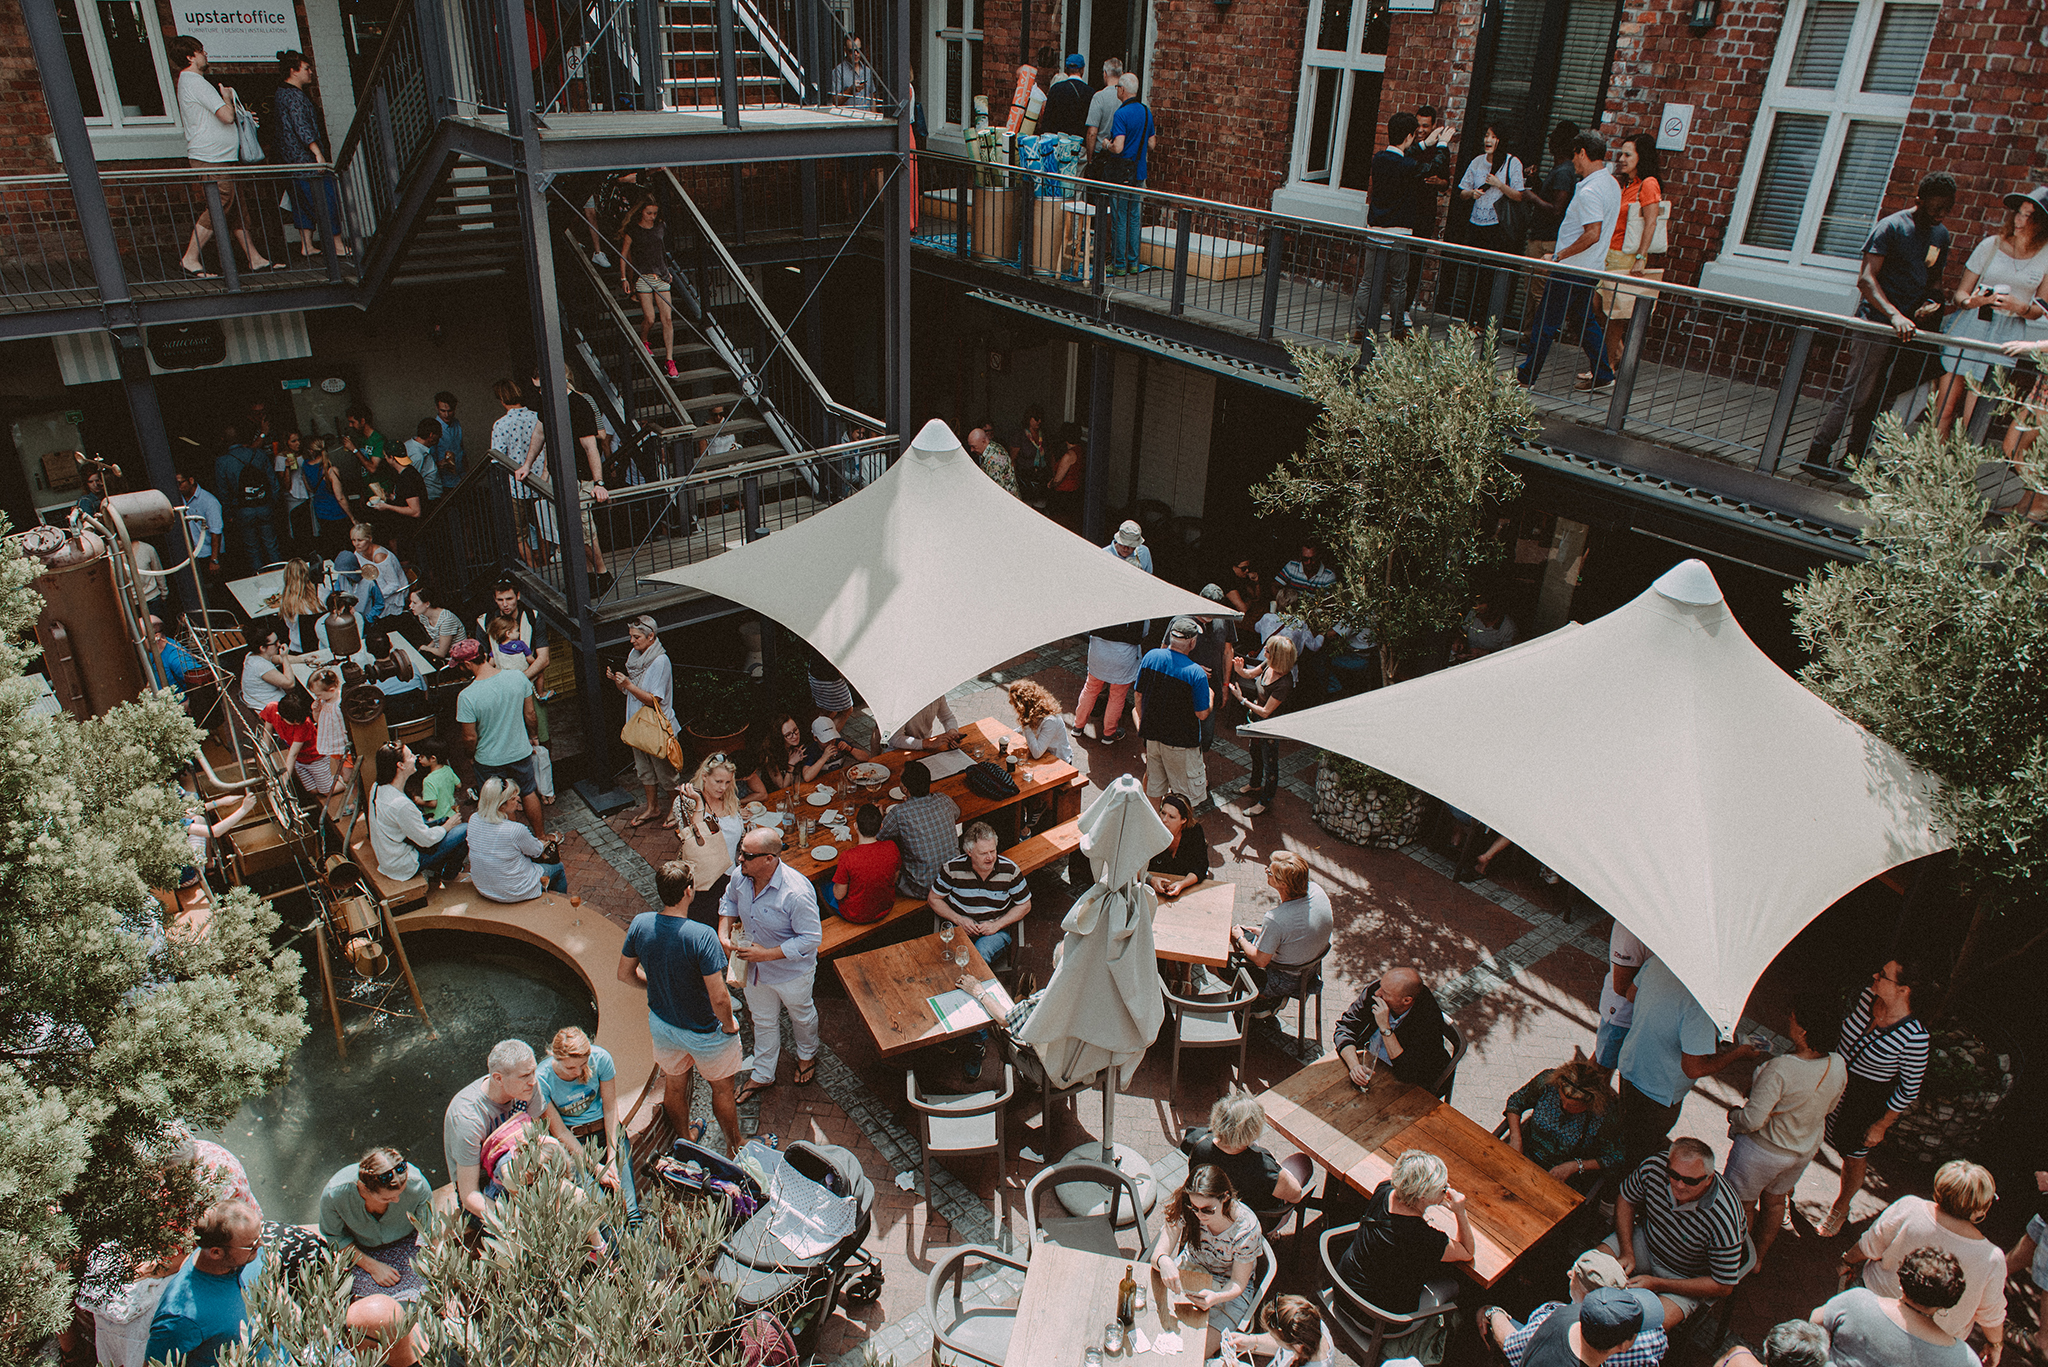 Old Biscuit Mill cafes by Polina Ilieva Photography